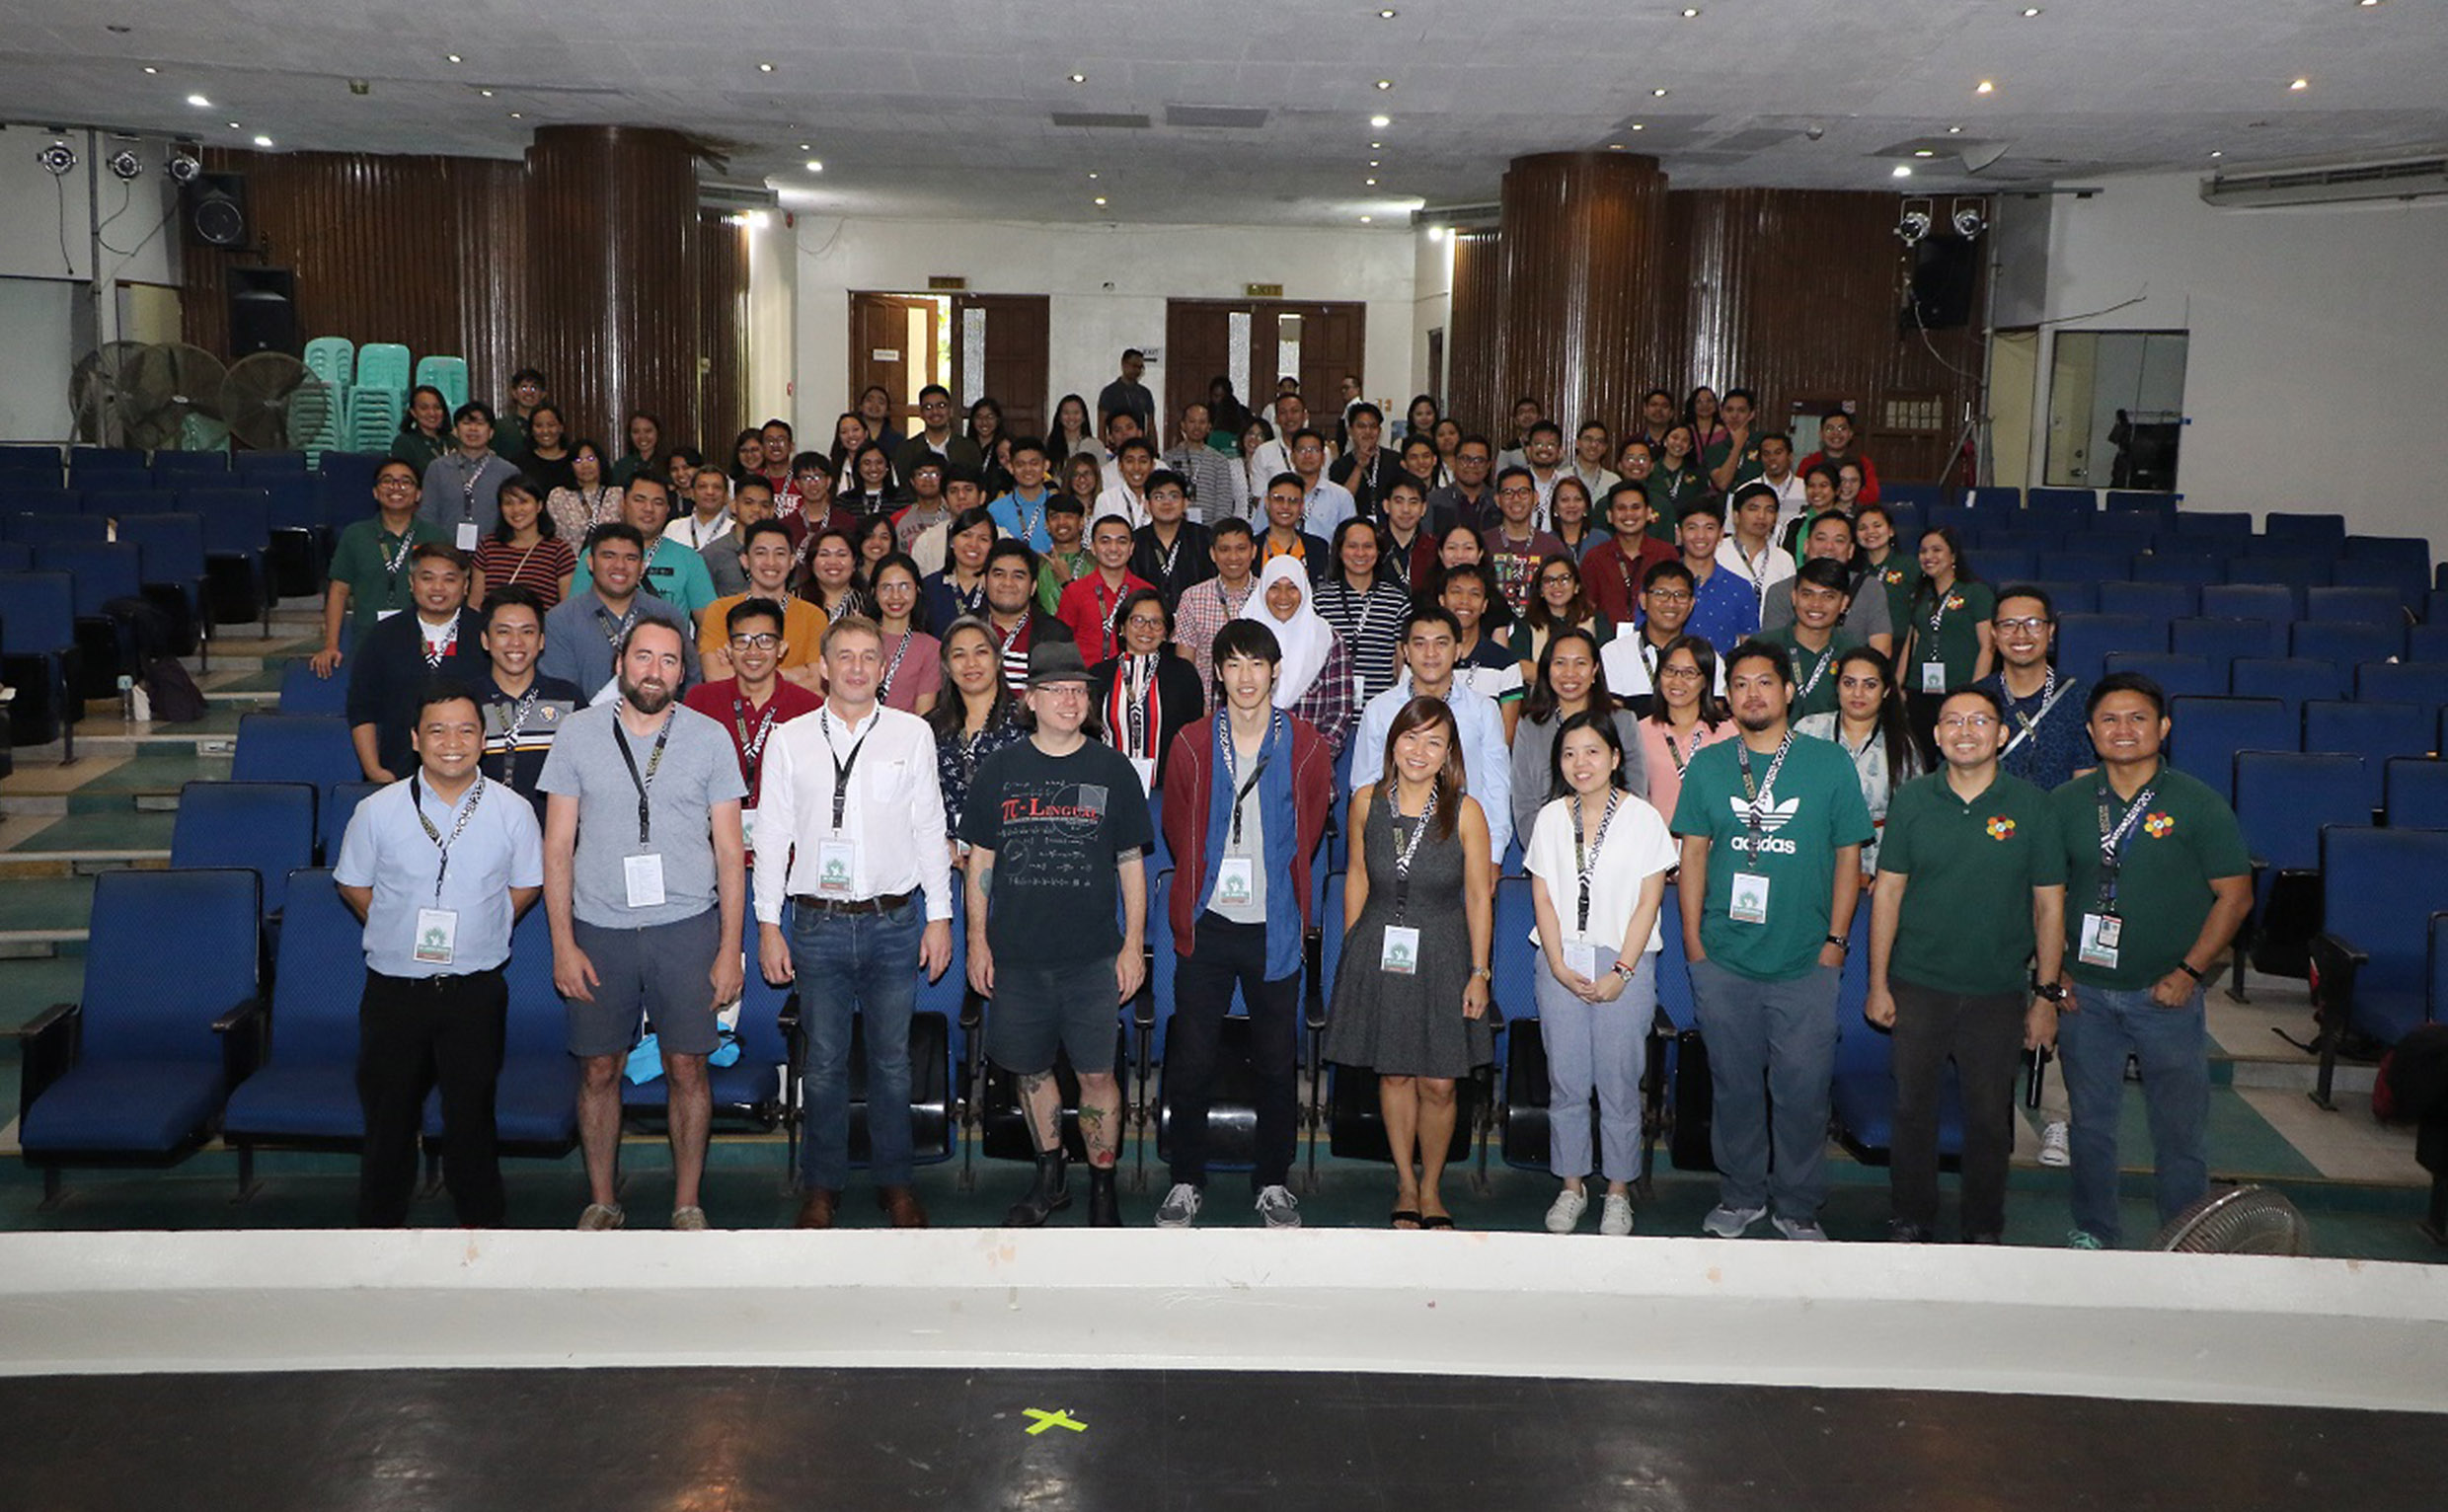 UPLB-IMSP hosts int'l biomathematics workshop